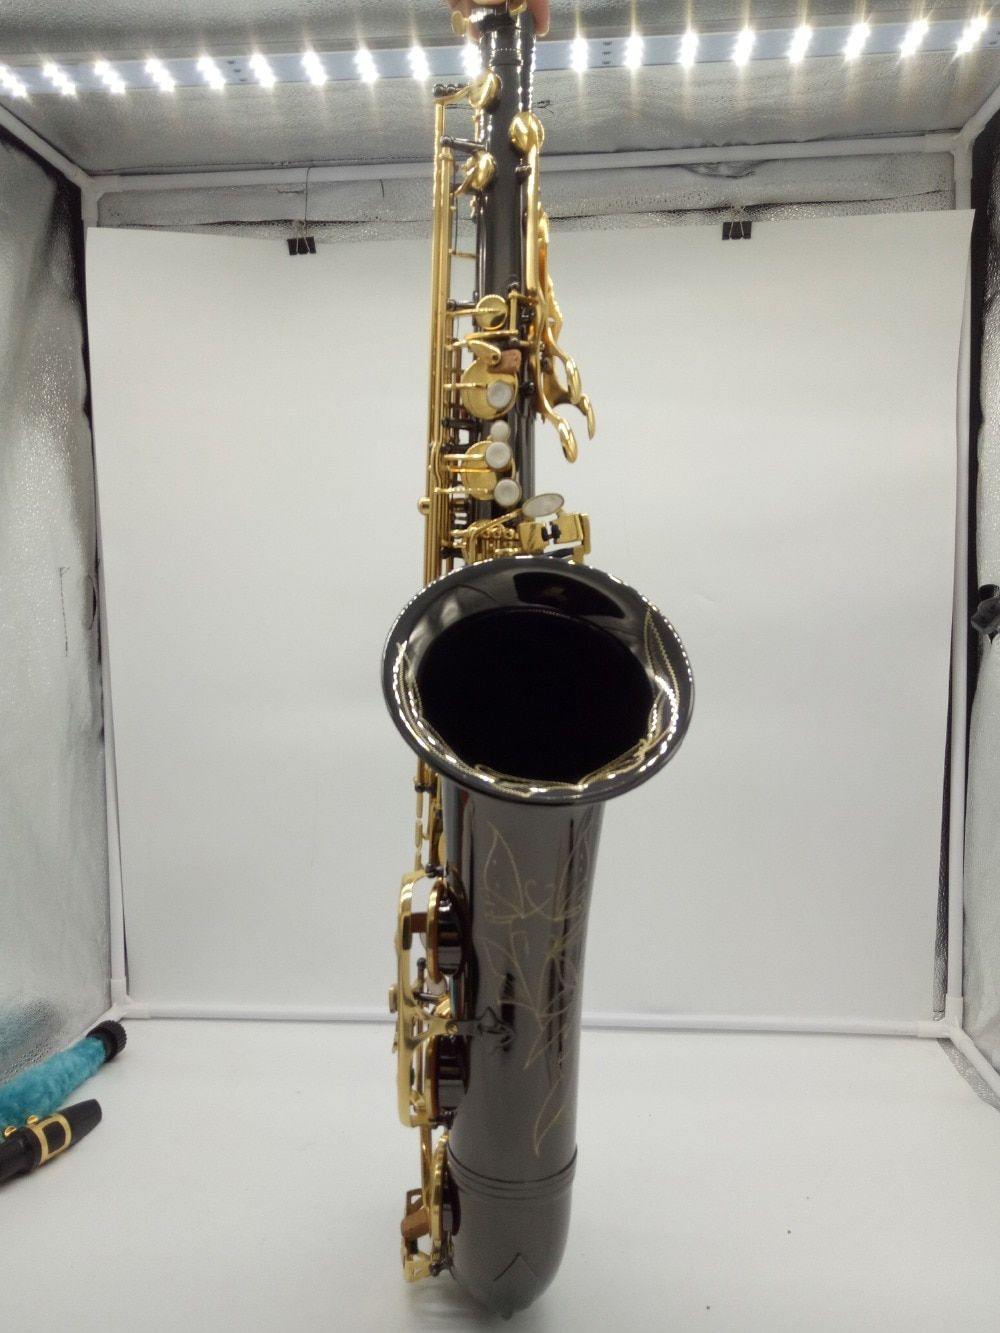 Brand New French Tenor Saxophone 802 Black Lacquer Sax Tenor Musical Instruments Professional 80II Included Case